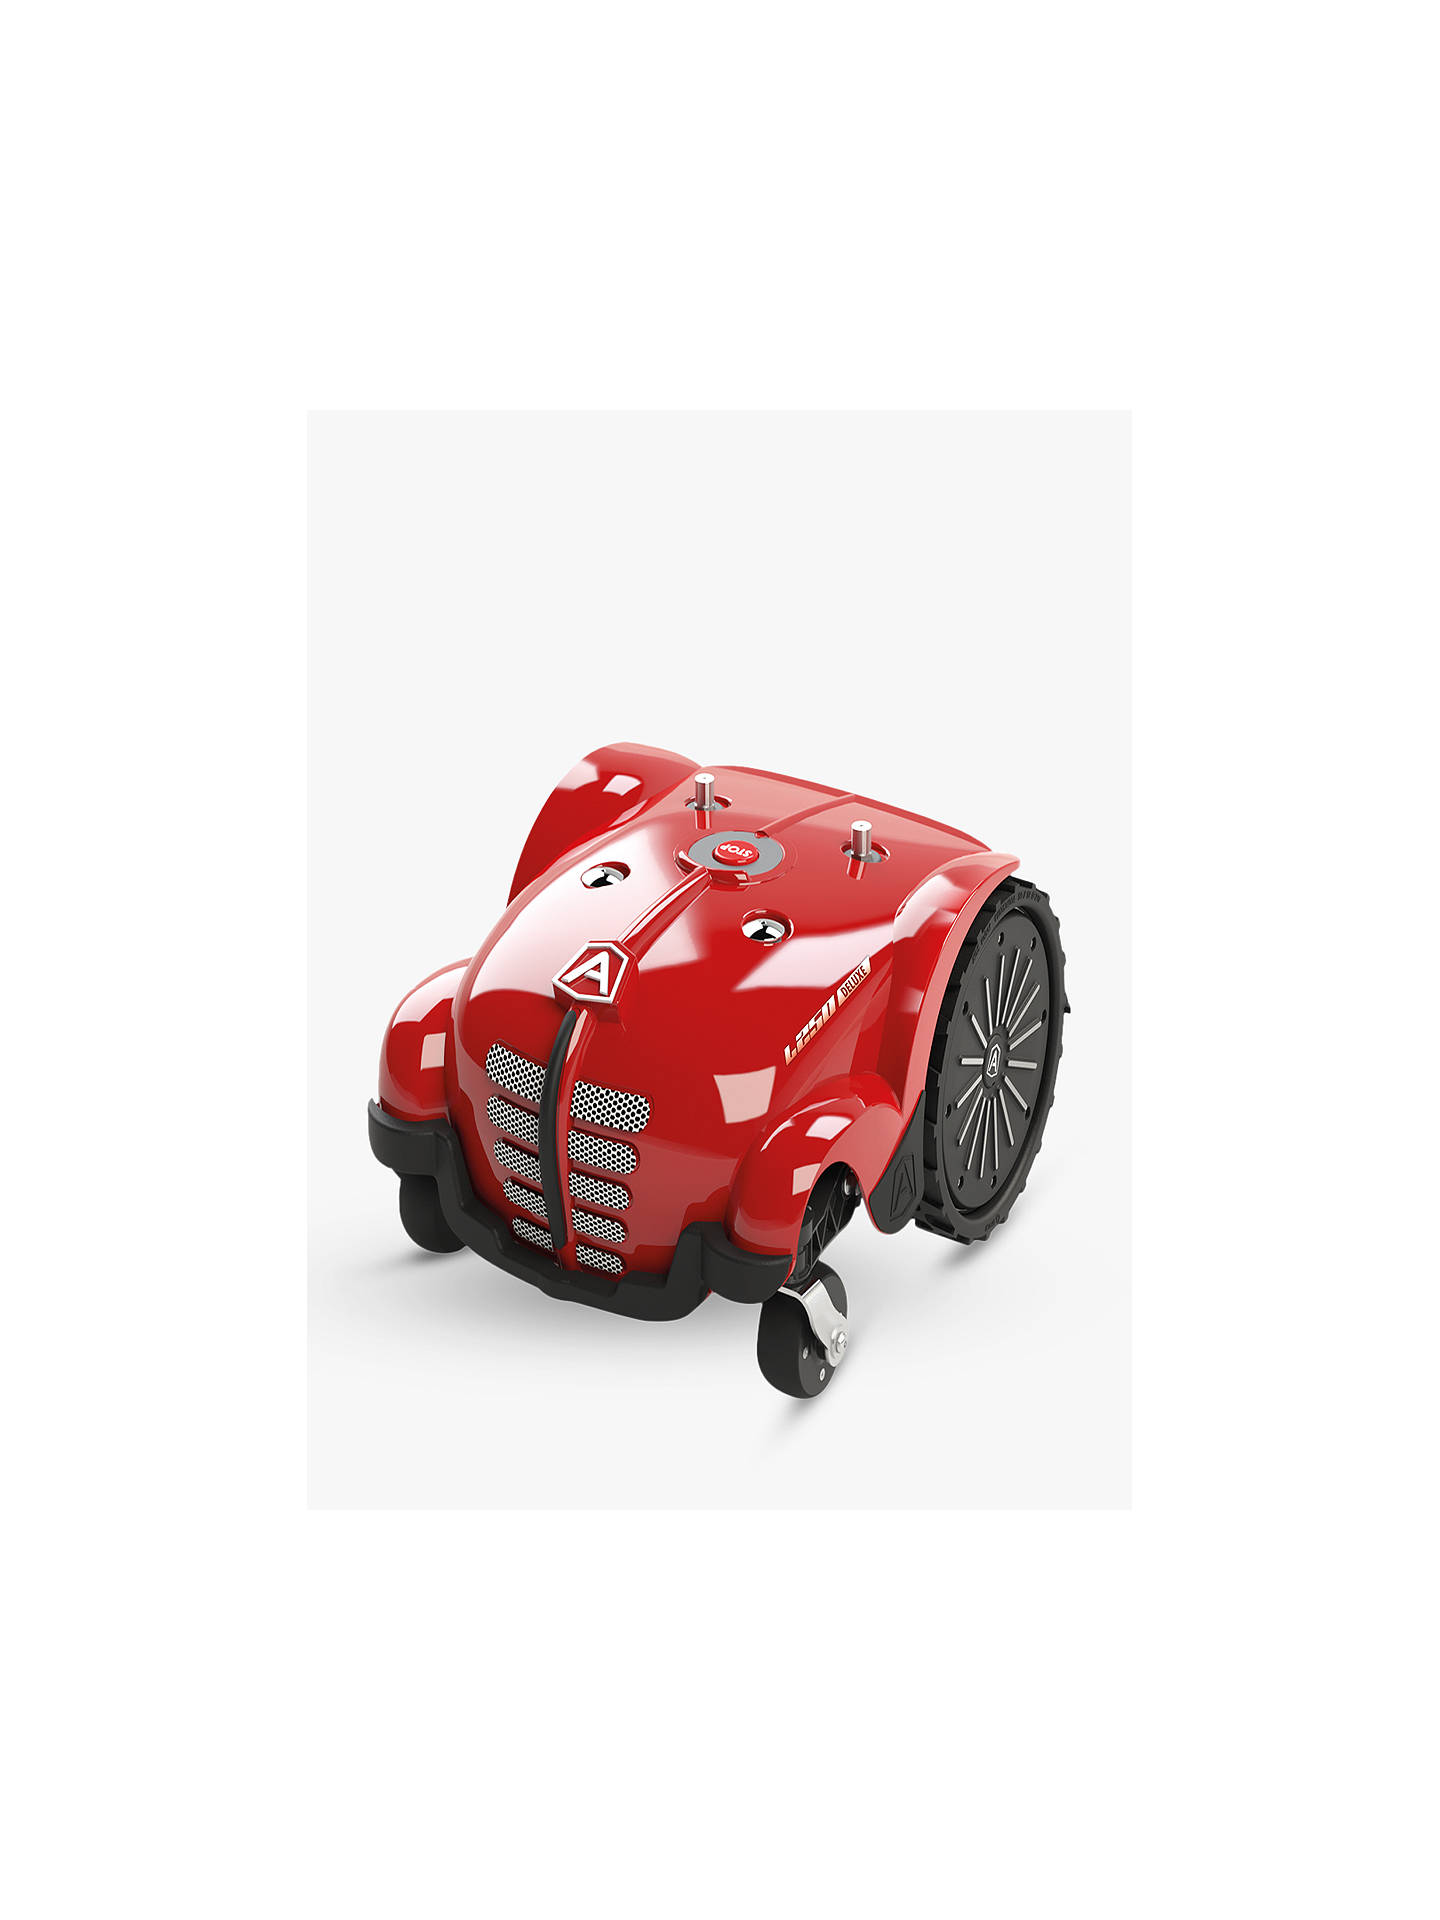 BuyAmbrogio L250i Elite Robotic Lawnmower Online at johnlewis.com